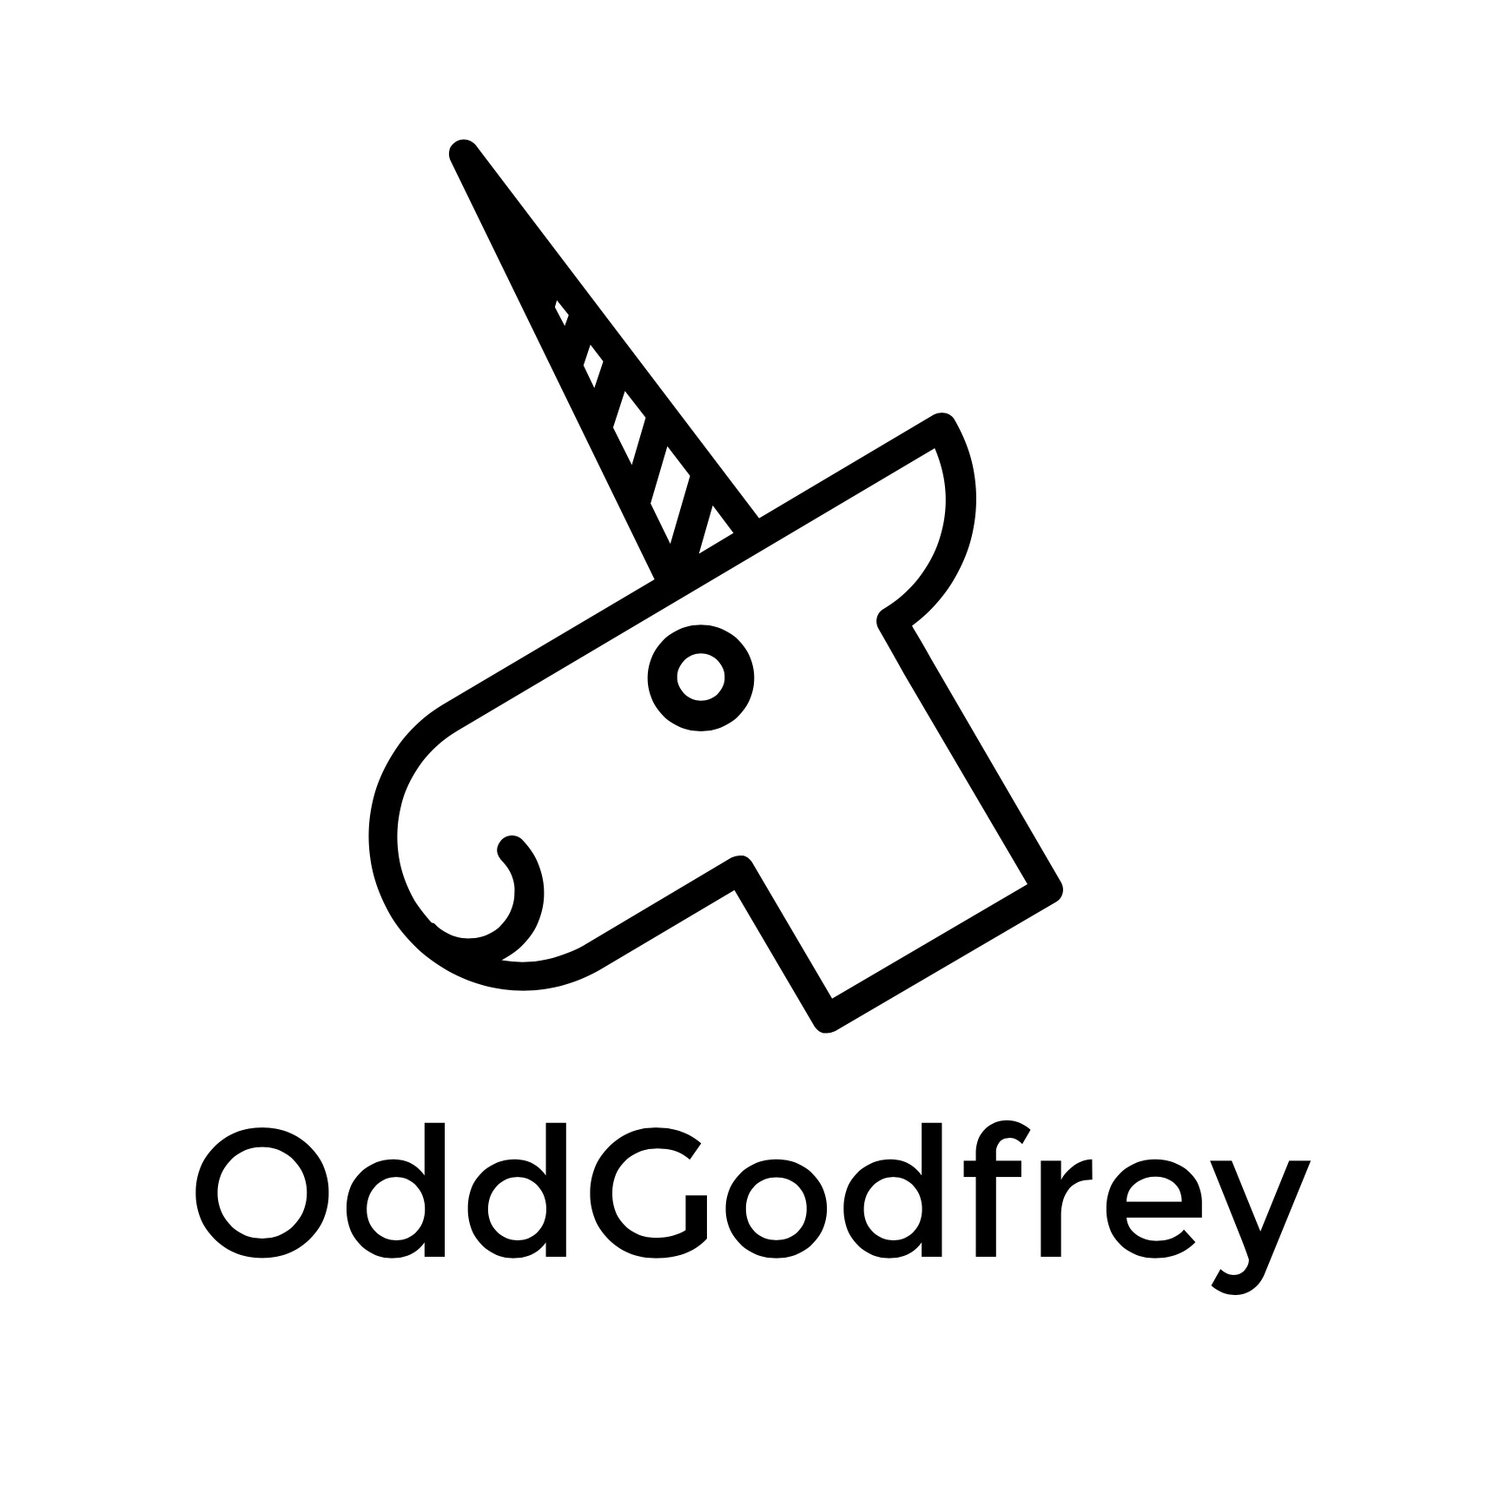 OddGodfrey: A Sailing Circumnavigation of the World